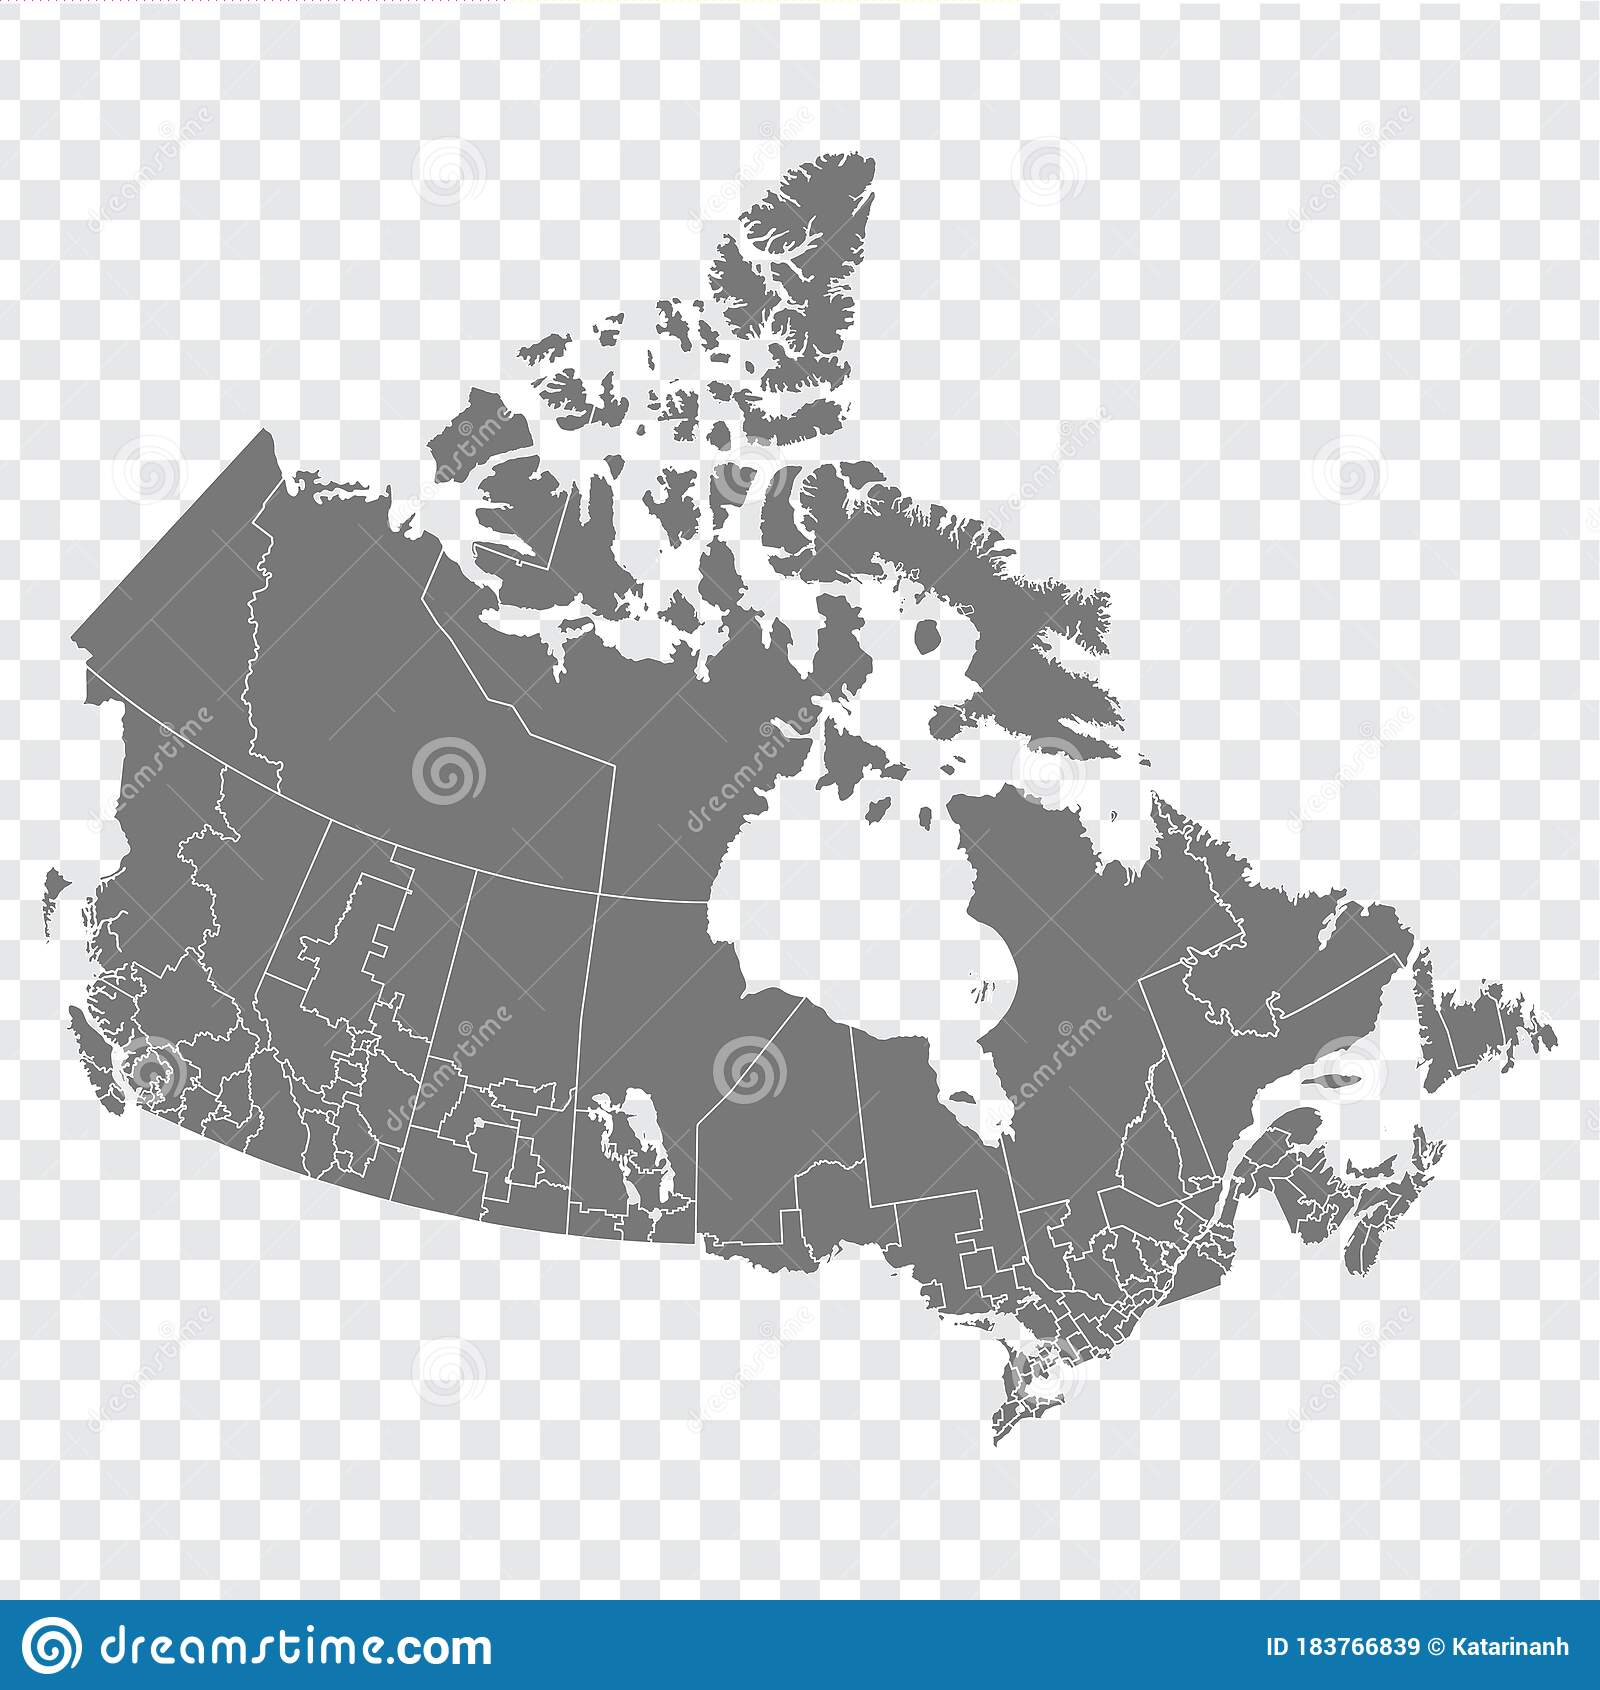 Picture of: Blank Map Of Canada High Quality Map Of Canada With Regions On Transparent Background Stock Vector Illustration Of Africa Design 183766839